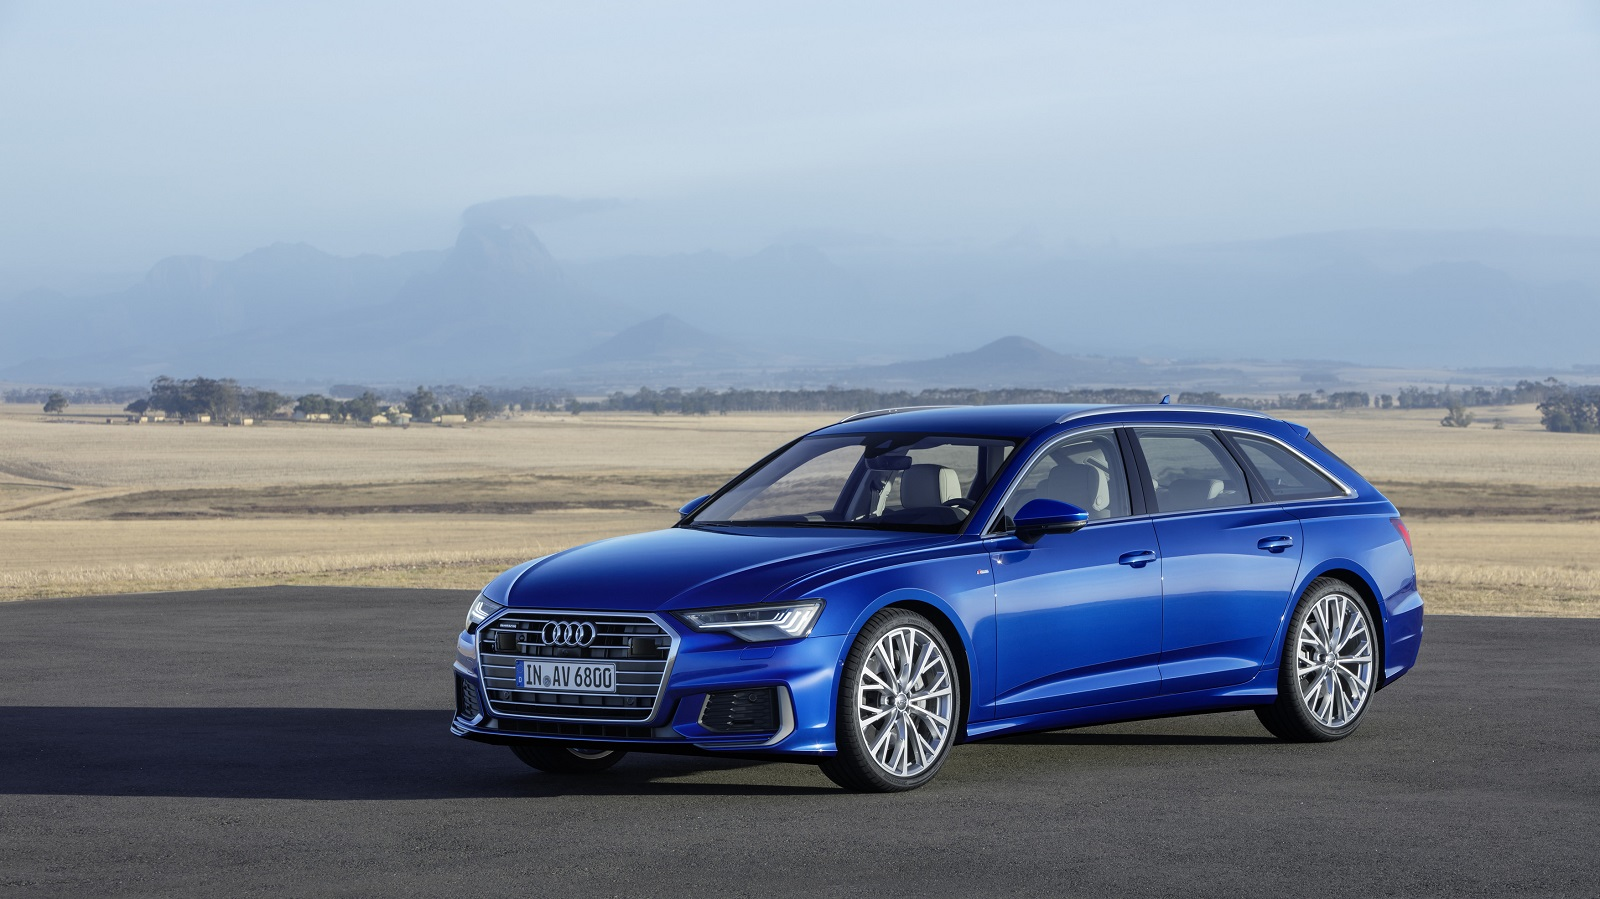 Report: Audi A6 Avant and RS6 Avant to Arrive in US by 2020